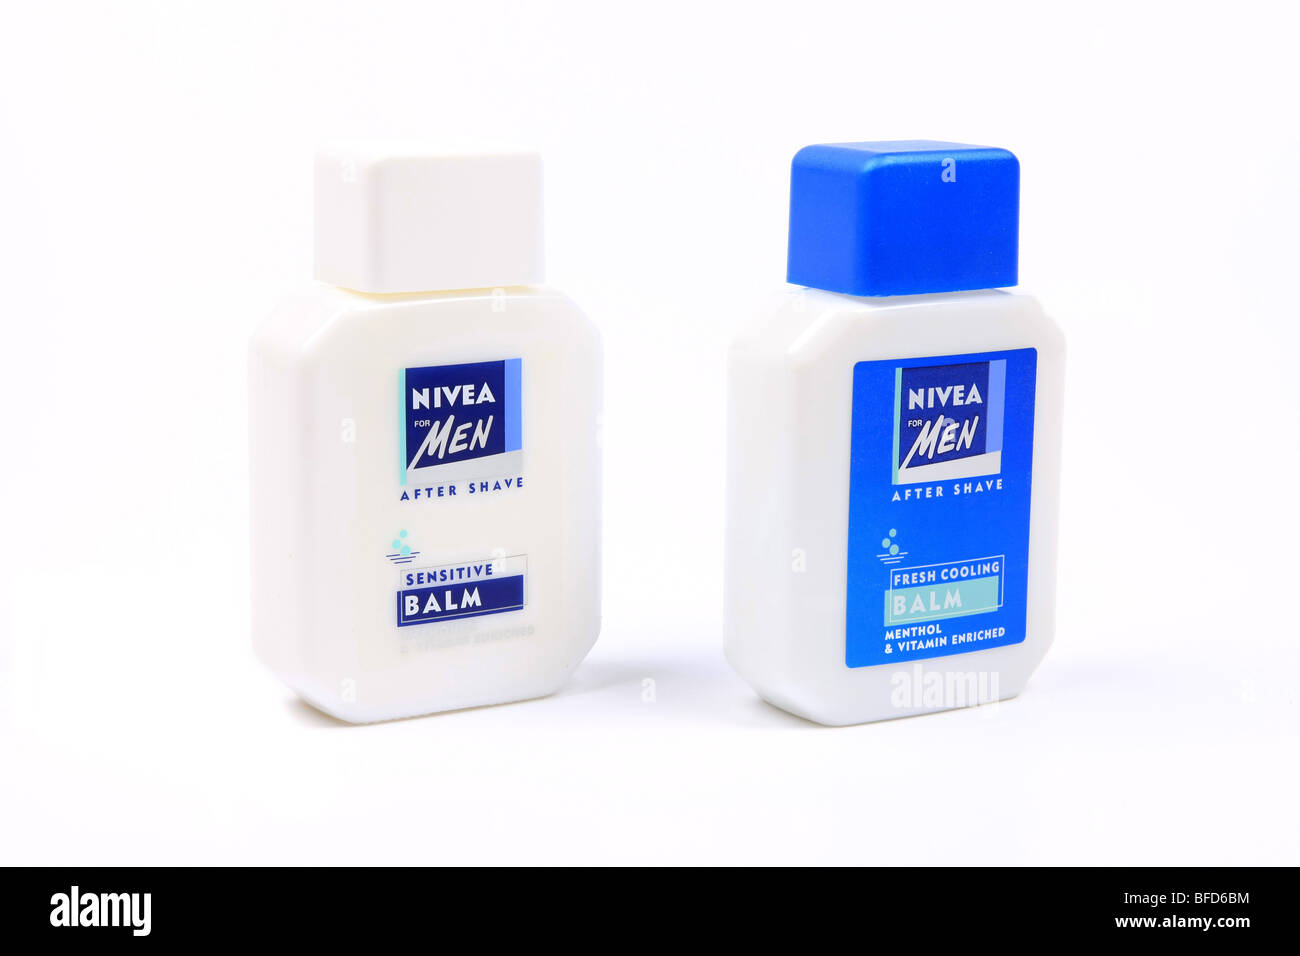 Bottles of Nivea for Men Aftershave balm against a white background - Stock Image